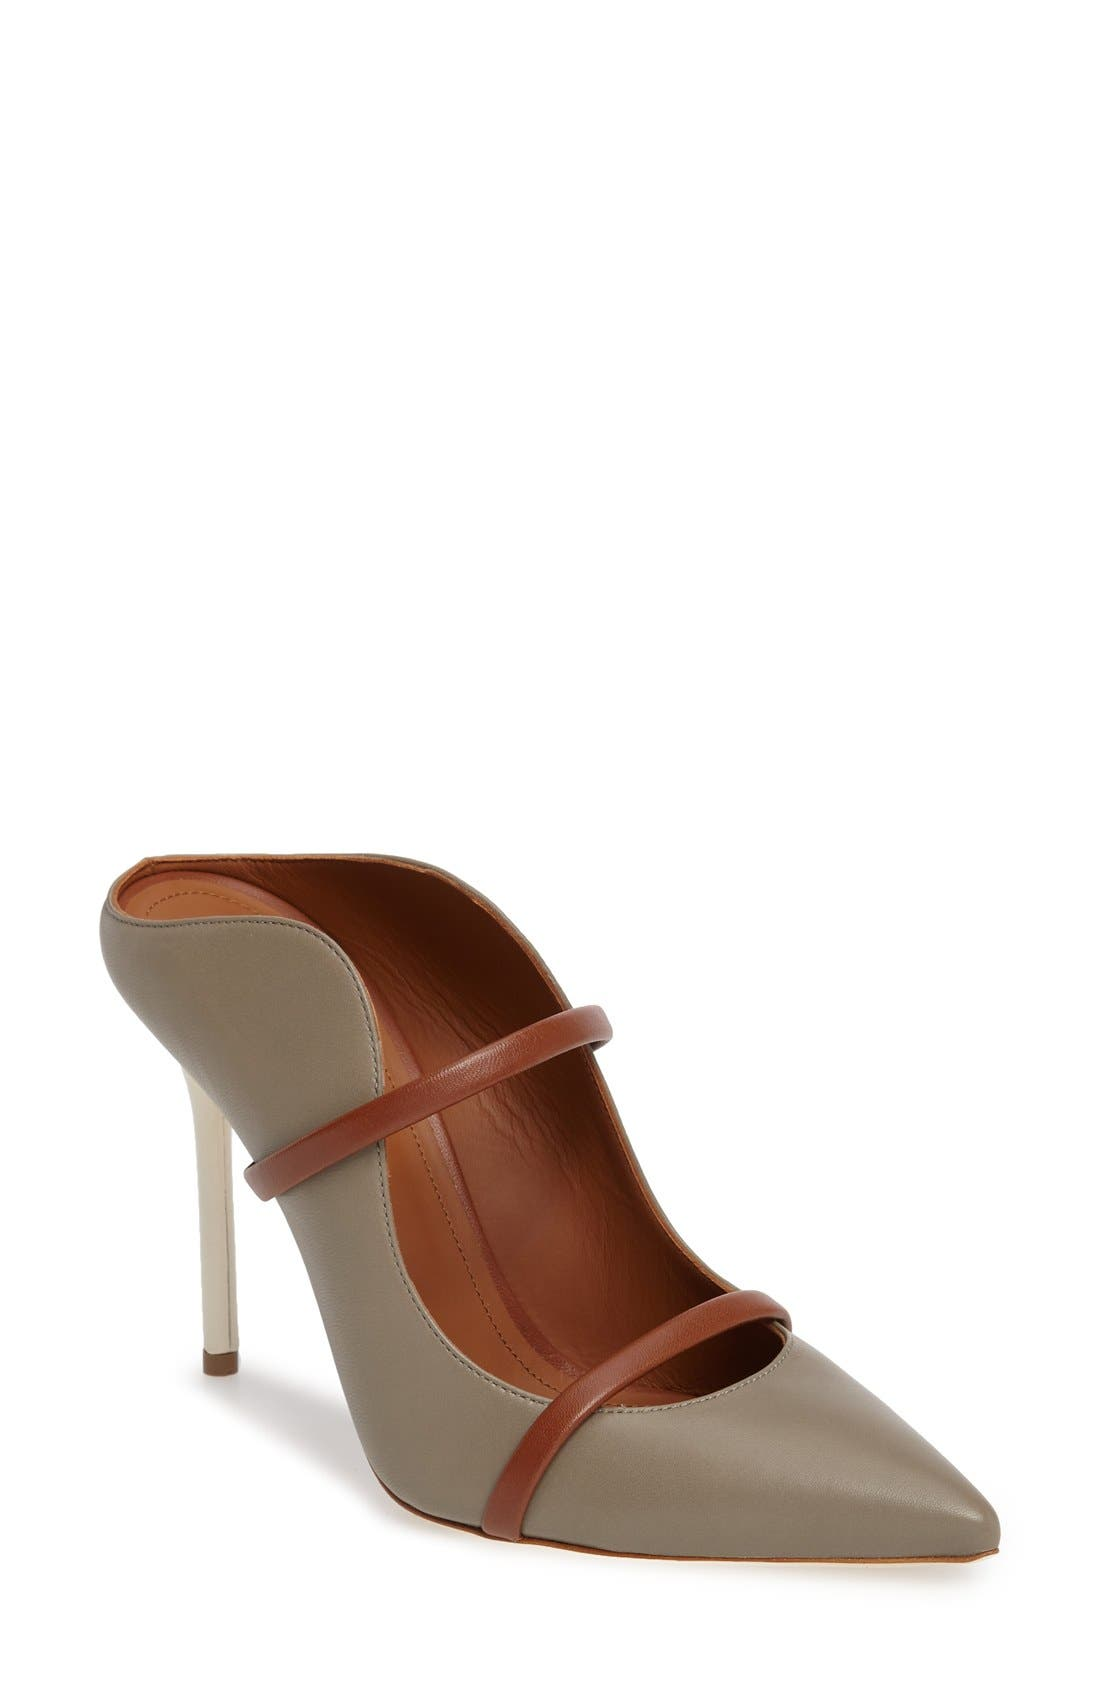 'Maureen' Pointy Toe Mule,                         Main,                         color,